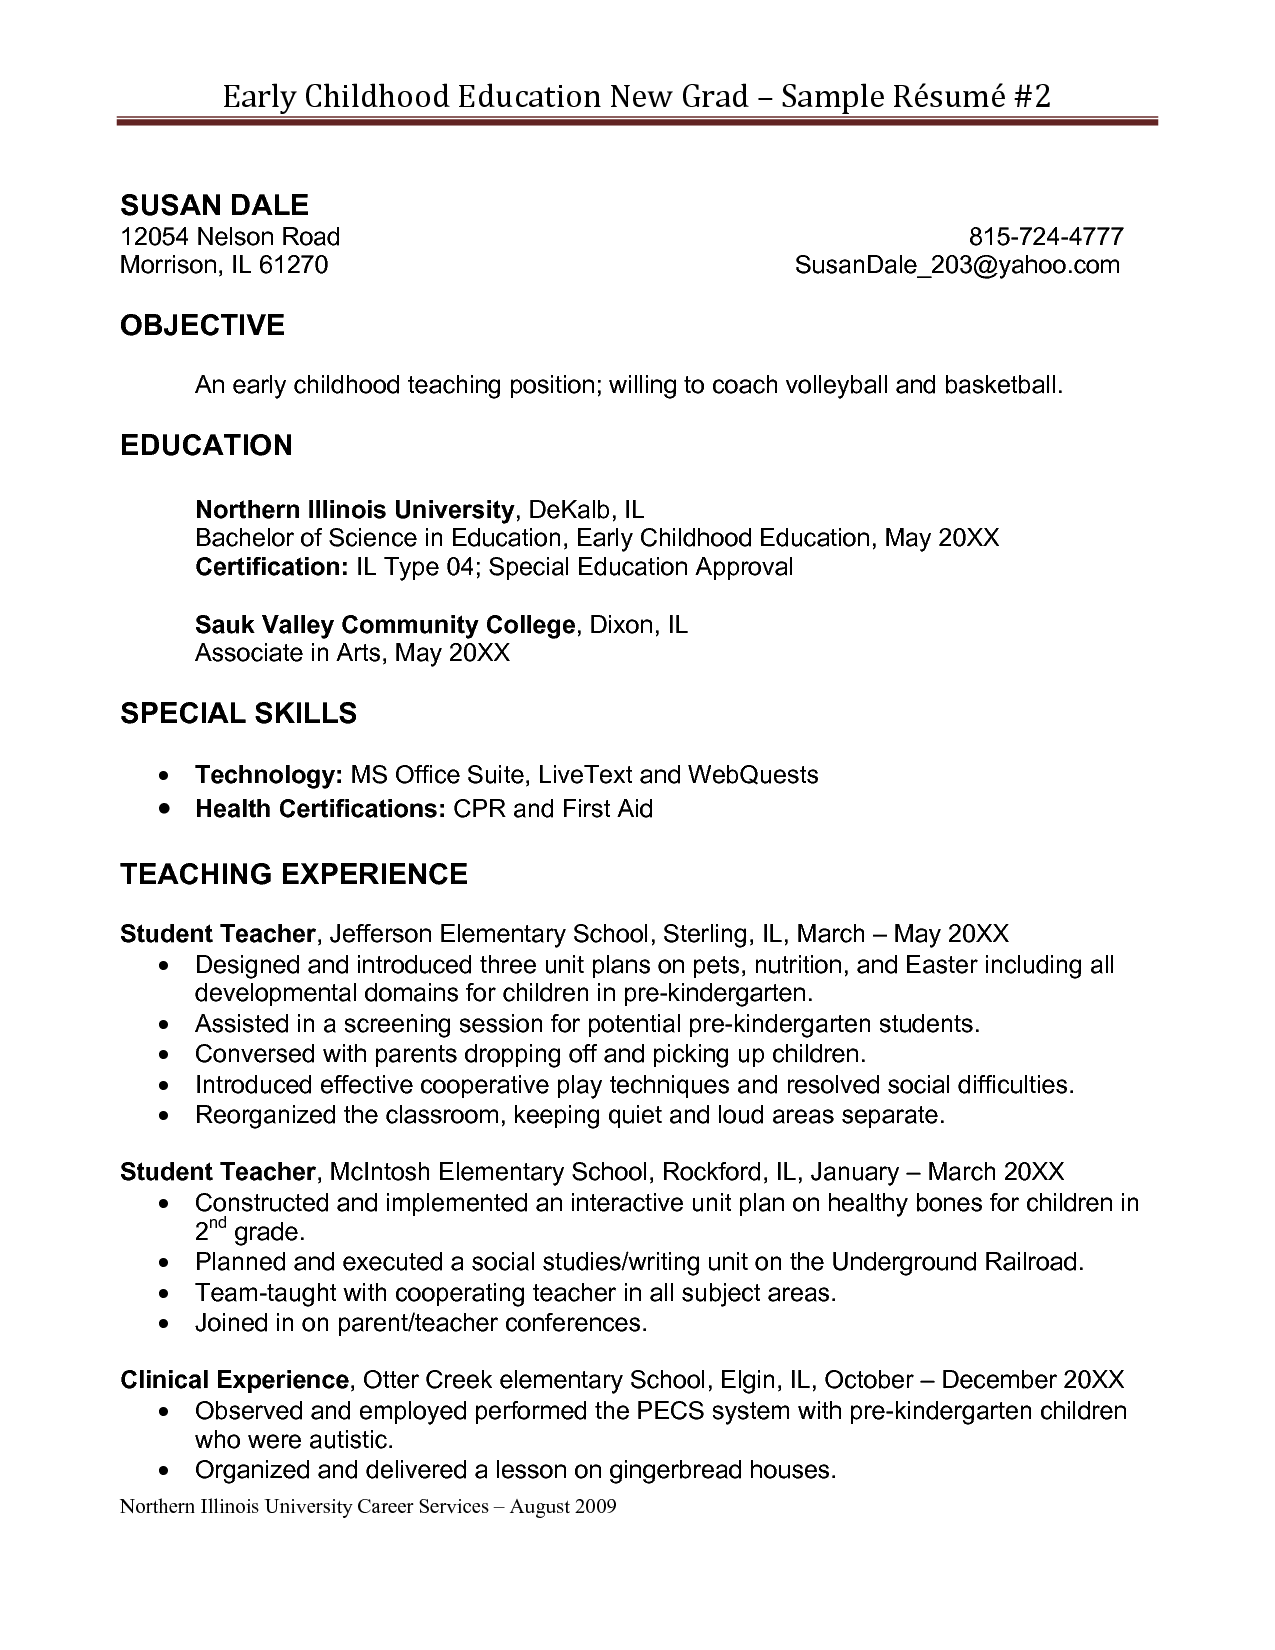 Early Childhood Education Resume Objective College Pinterest